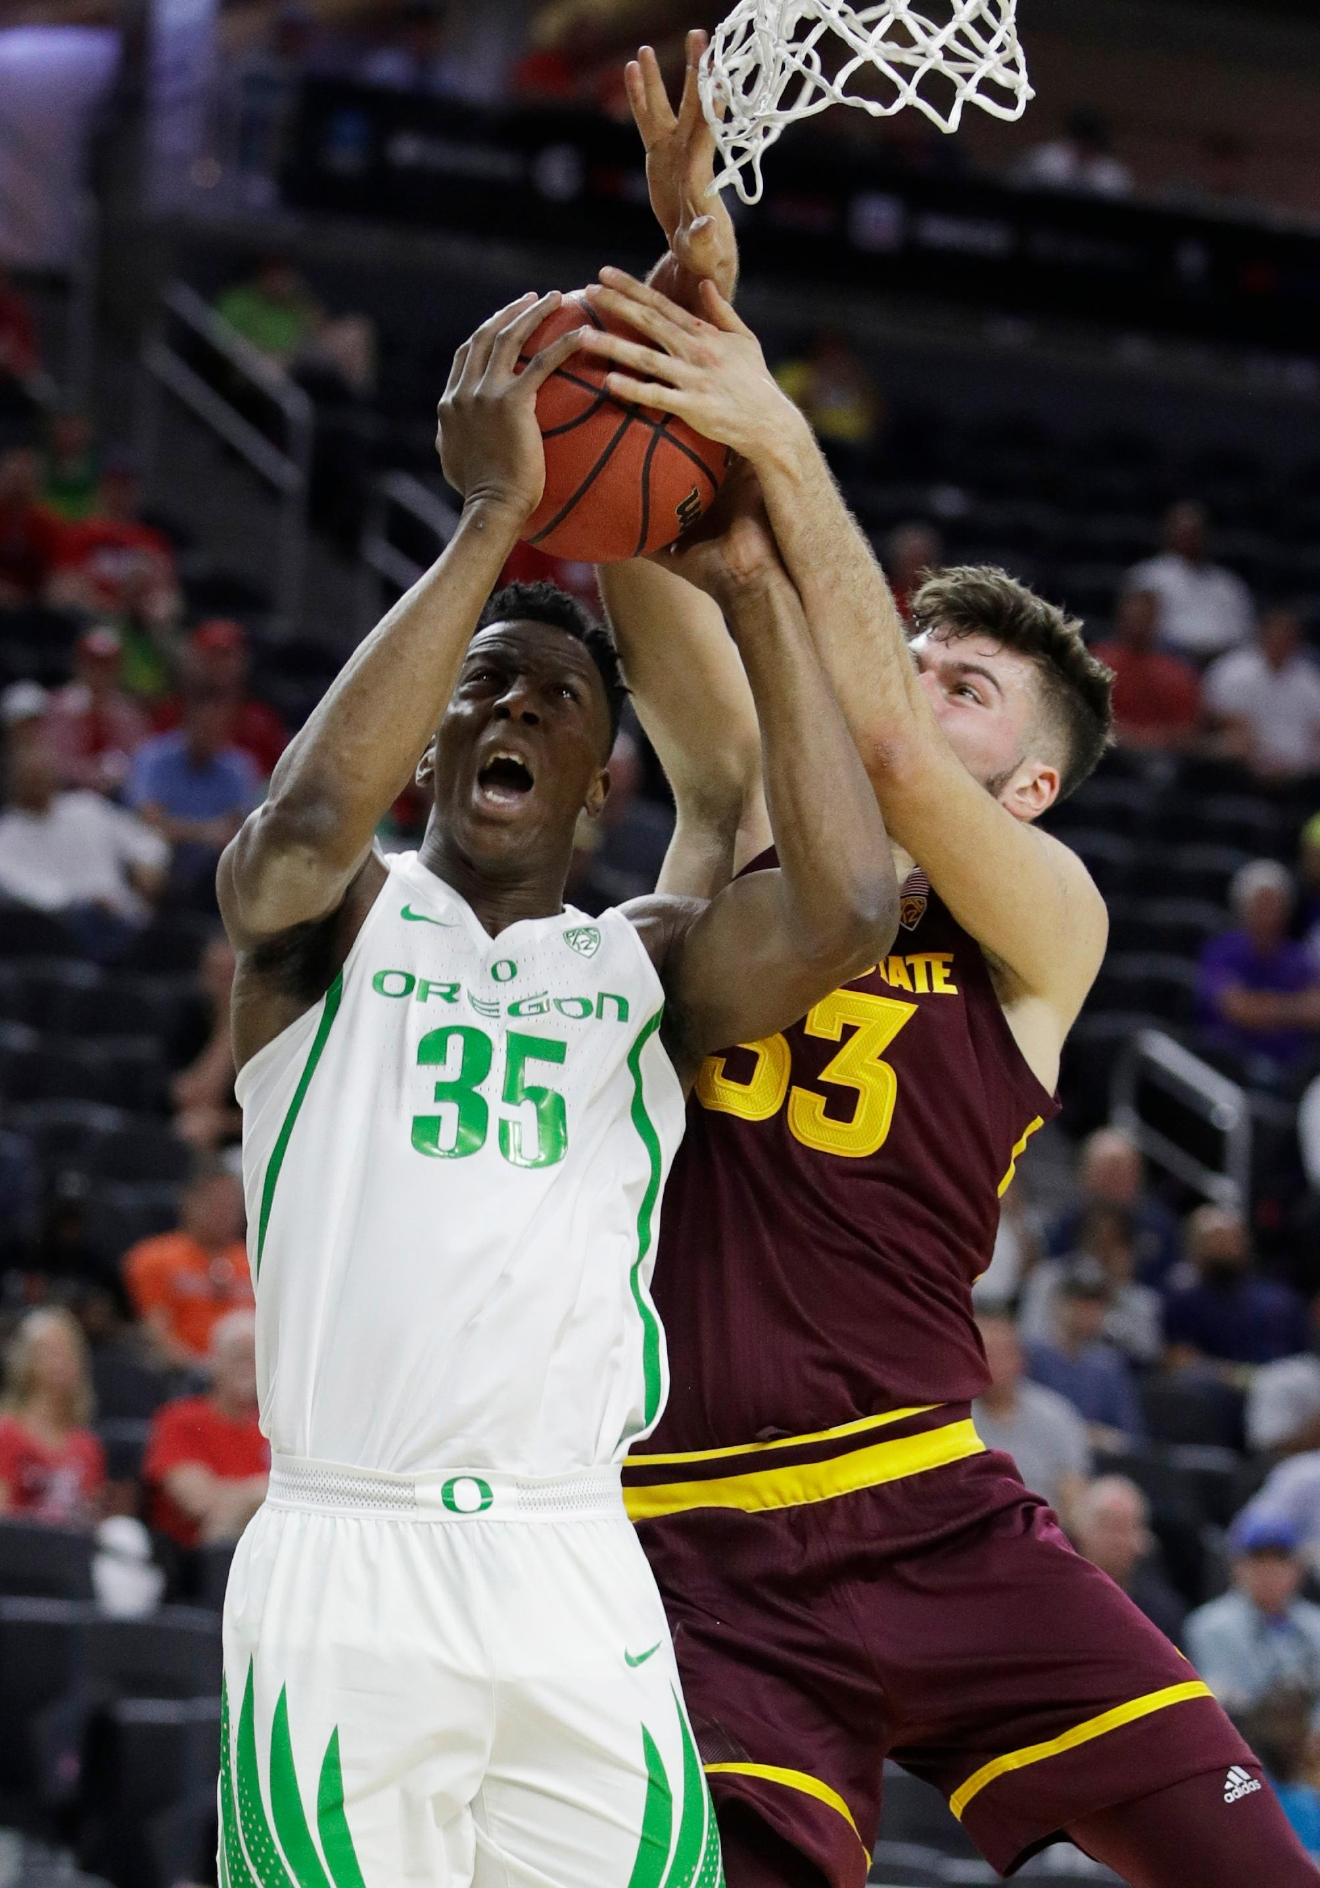 Arizona State's Ramon Vila, right, fouls Oregon's Kavell Bigby-Williams during the first half of an NCAA college basketball game in the quarterfinals of the Pac-12 men's tournament Thursday, March 9, 2017, in Las Vegas. (AP Photo/John Locher)